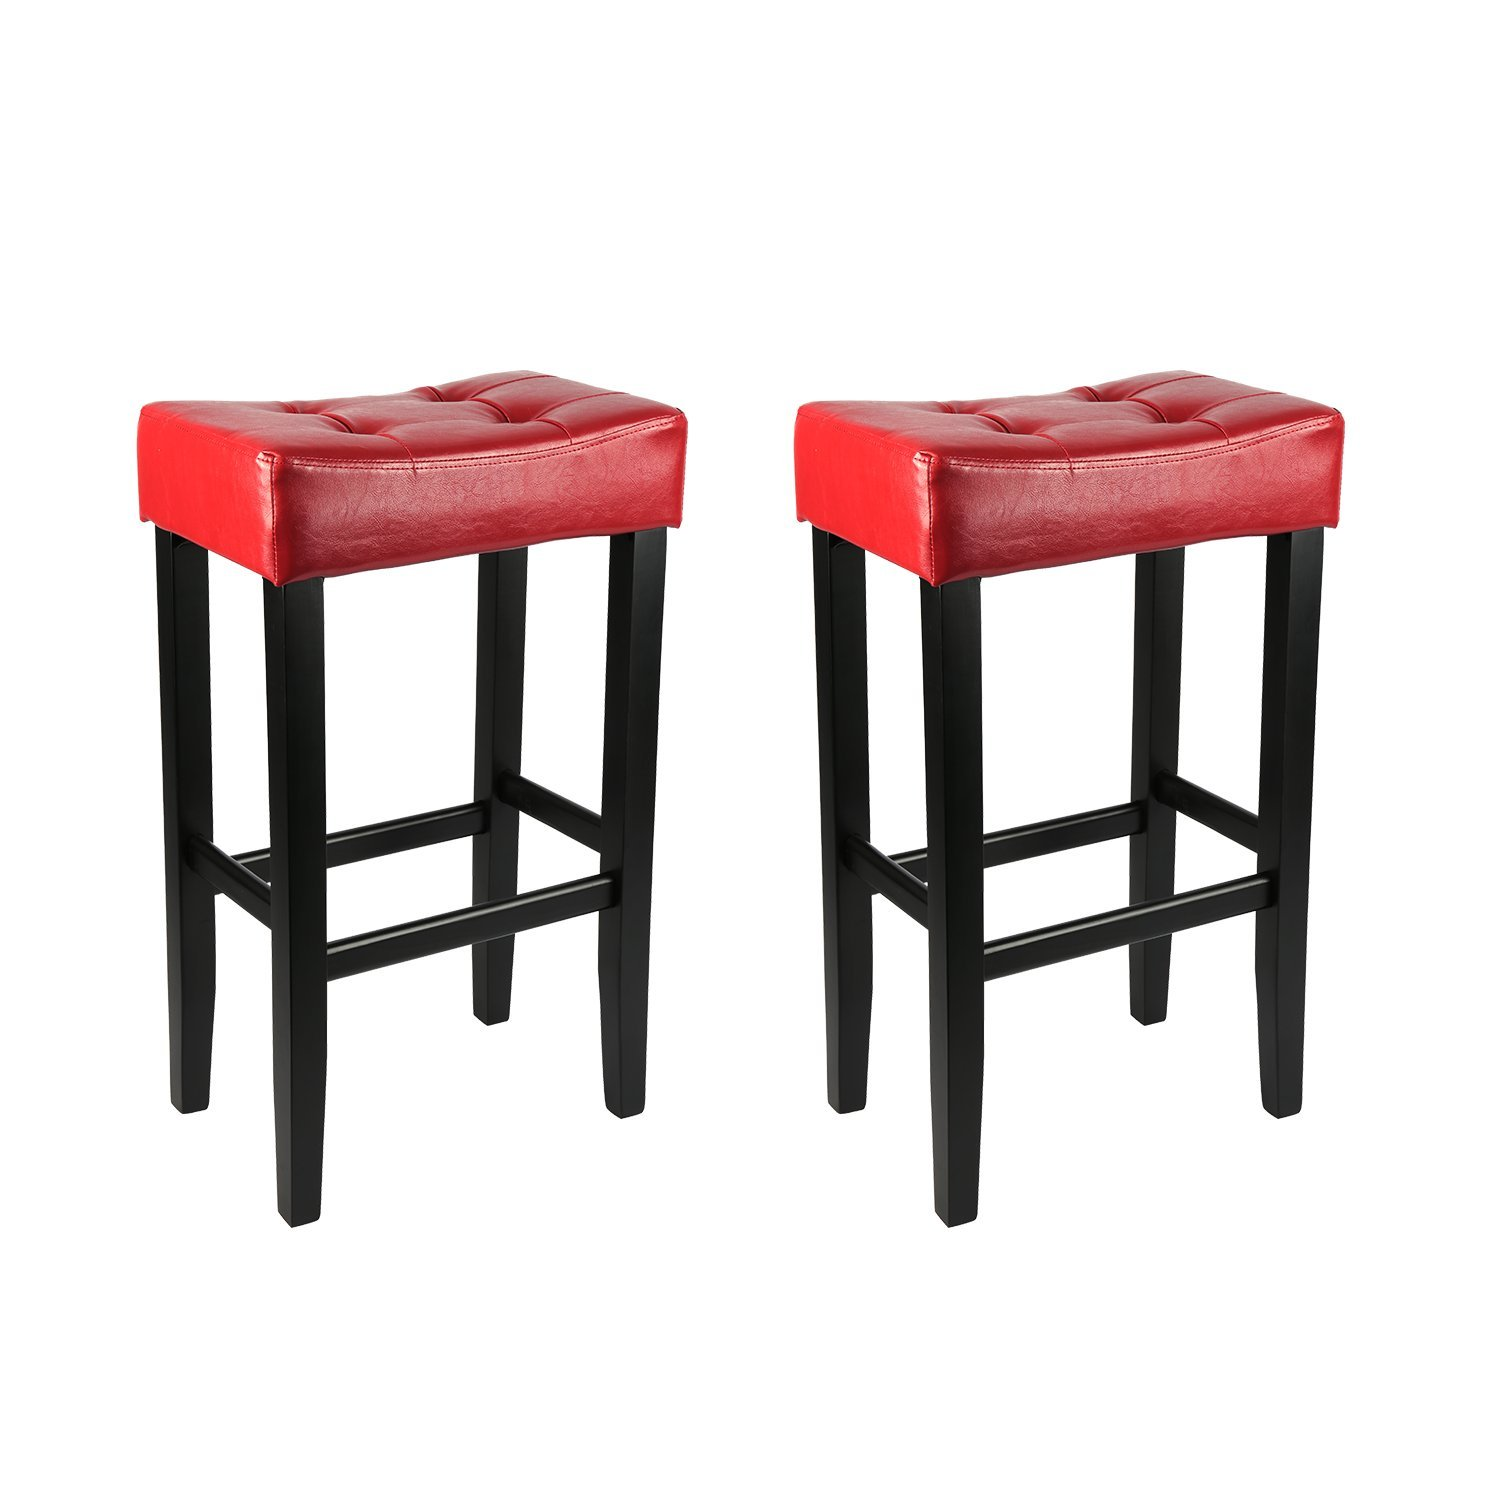 Cheap Wood Backless Bar Stools Find Wood Backless Bar Stools Deals